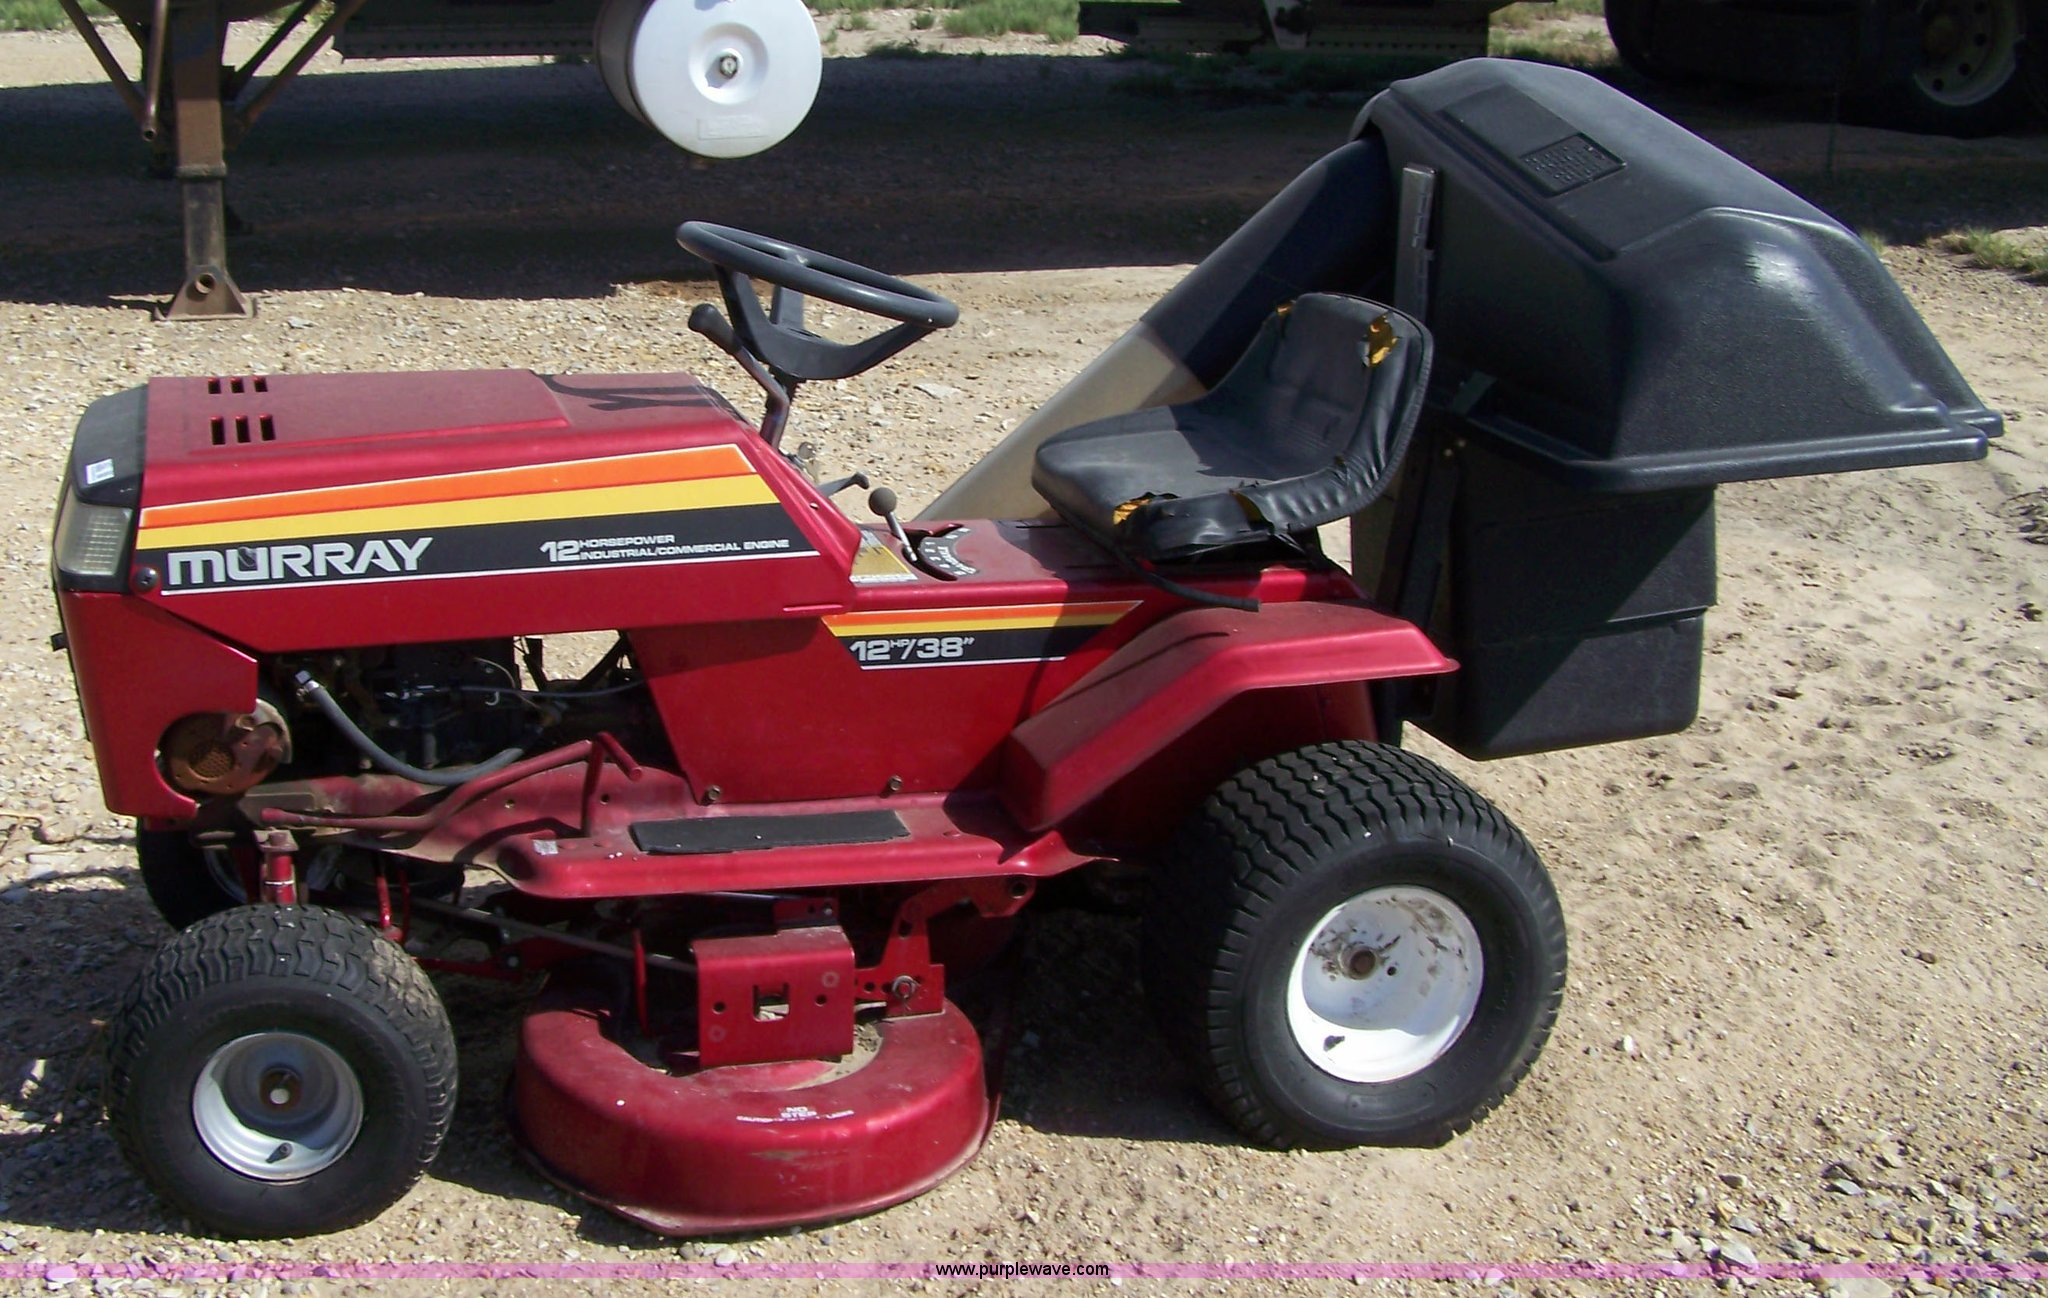 Murray Riding Mower Item 7422 Sold November 3 Midwest I